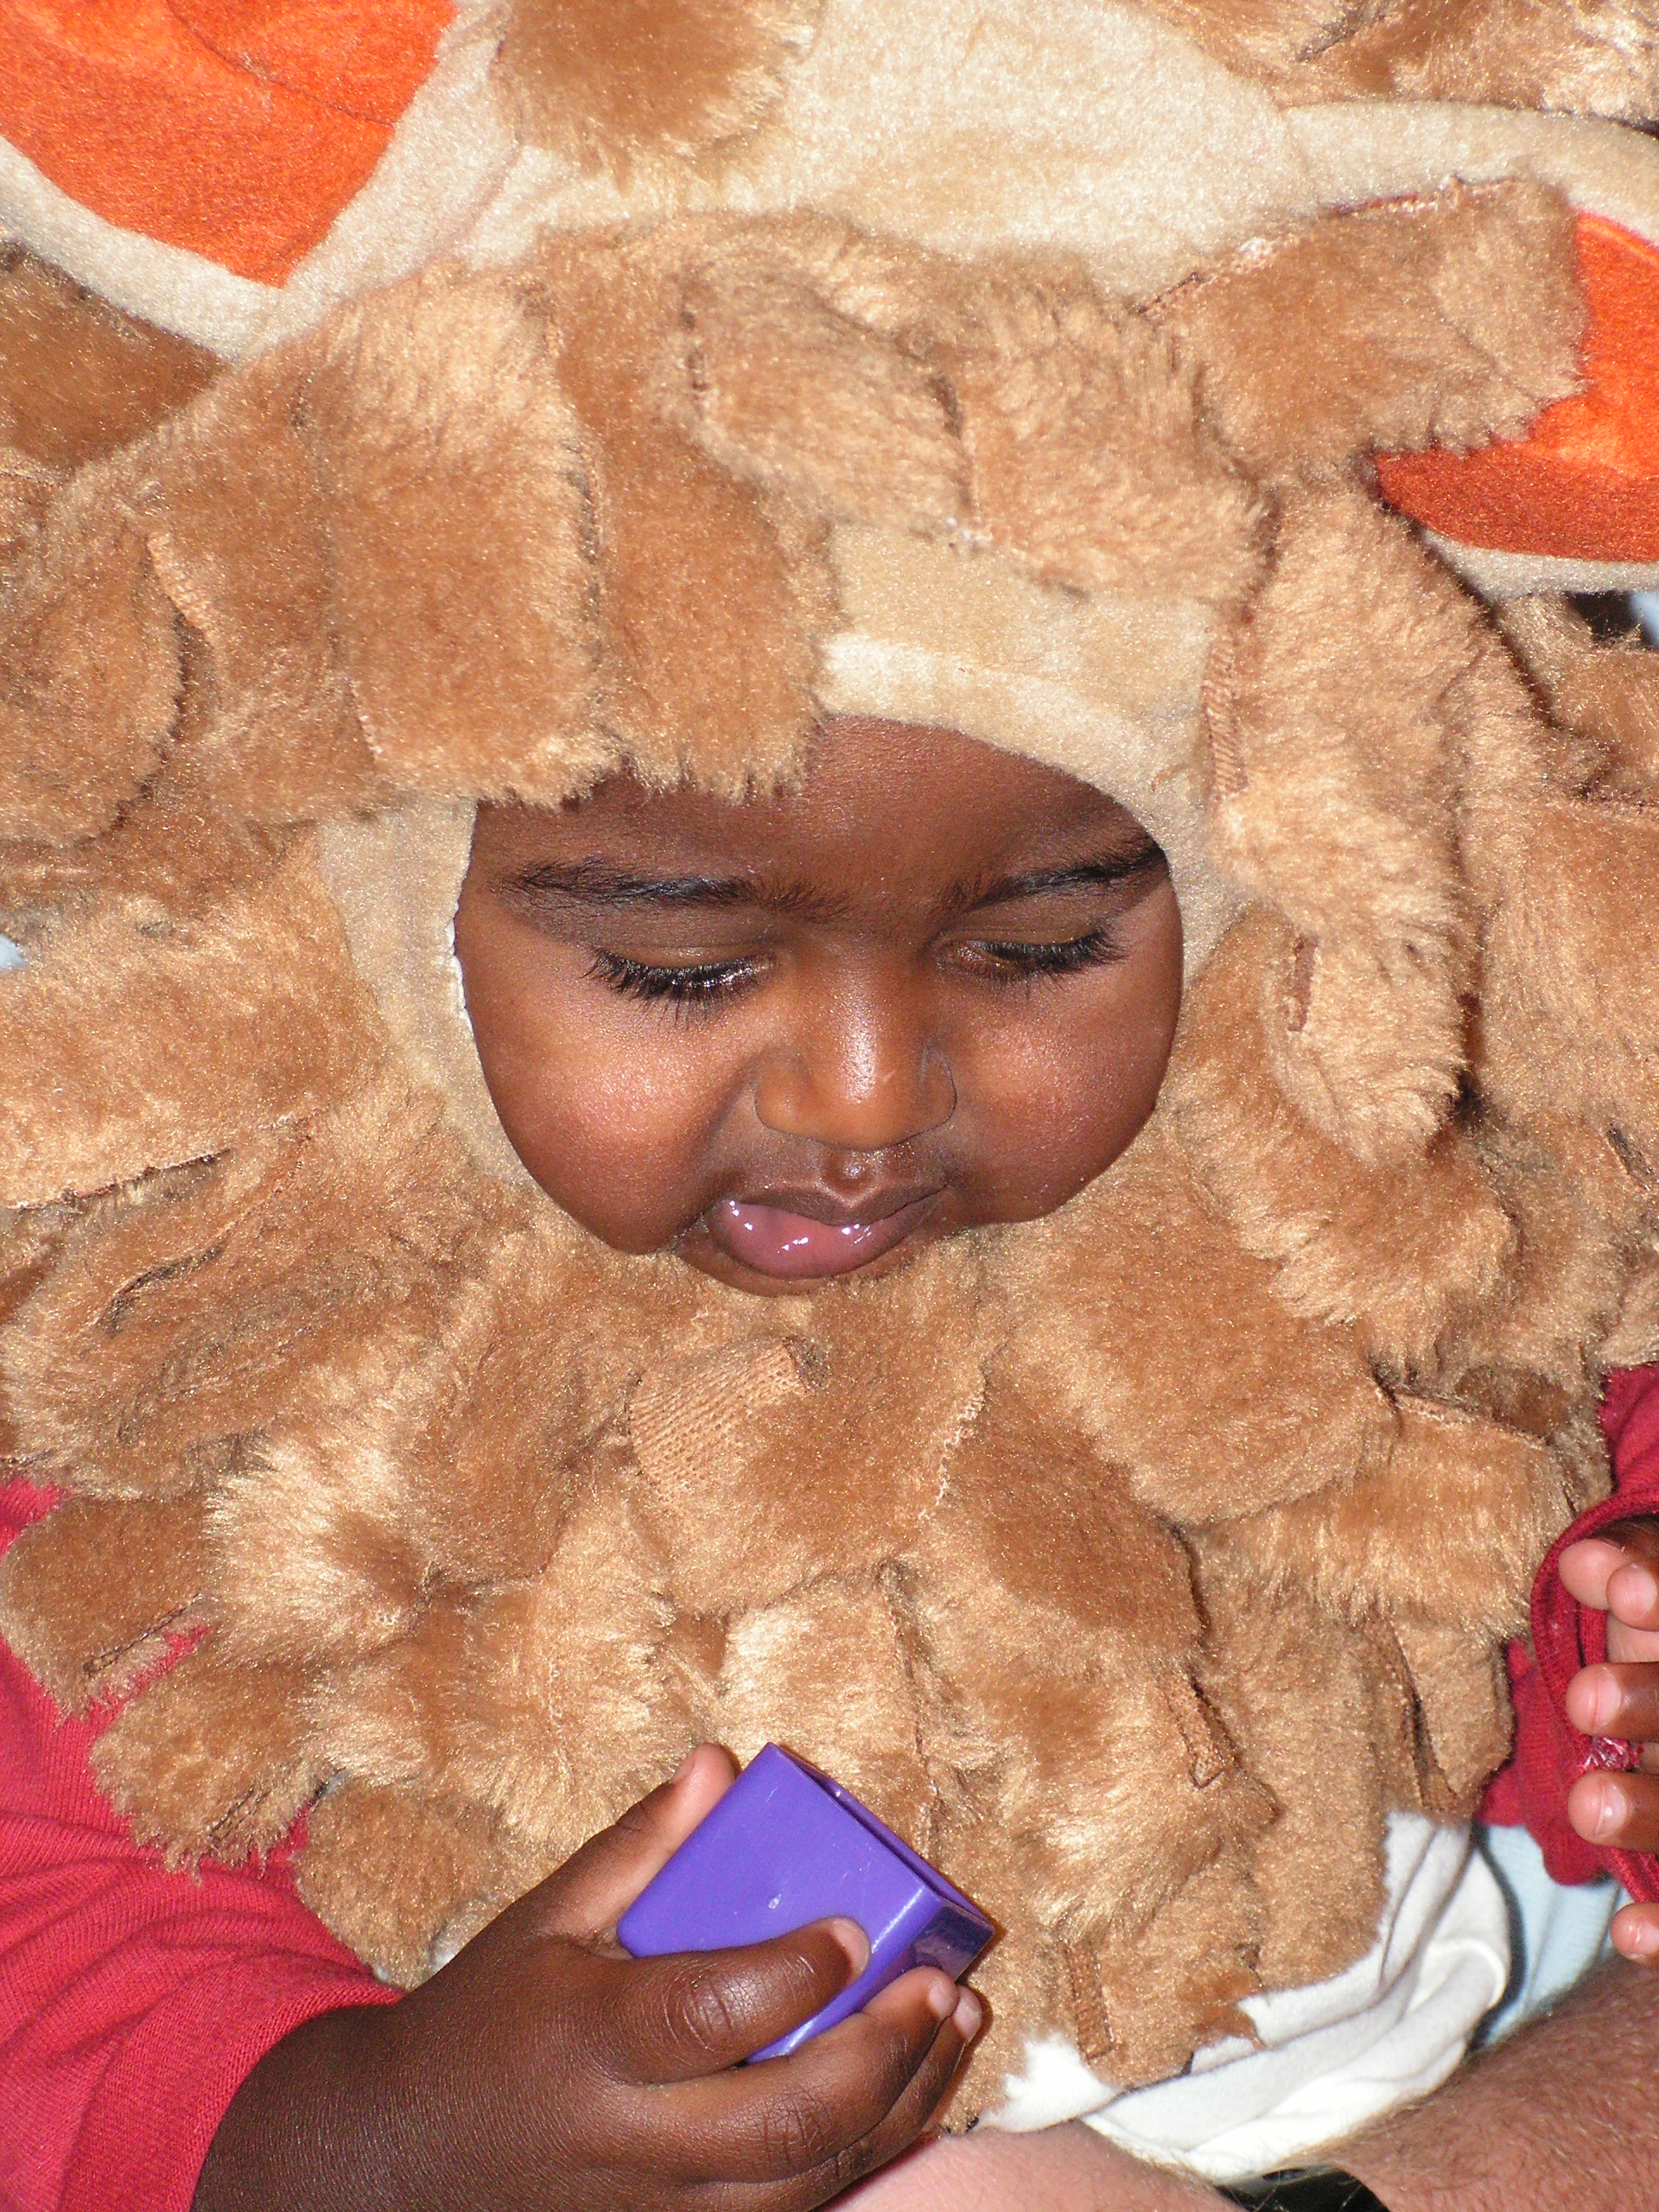 The battle of the costumes... the lion cub